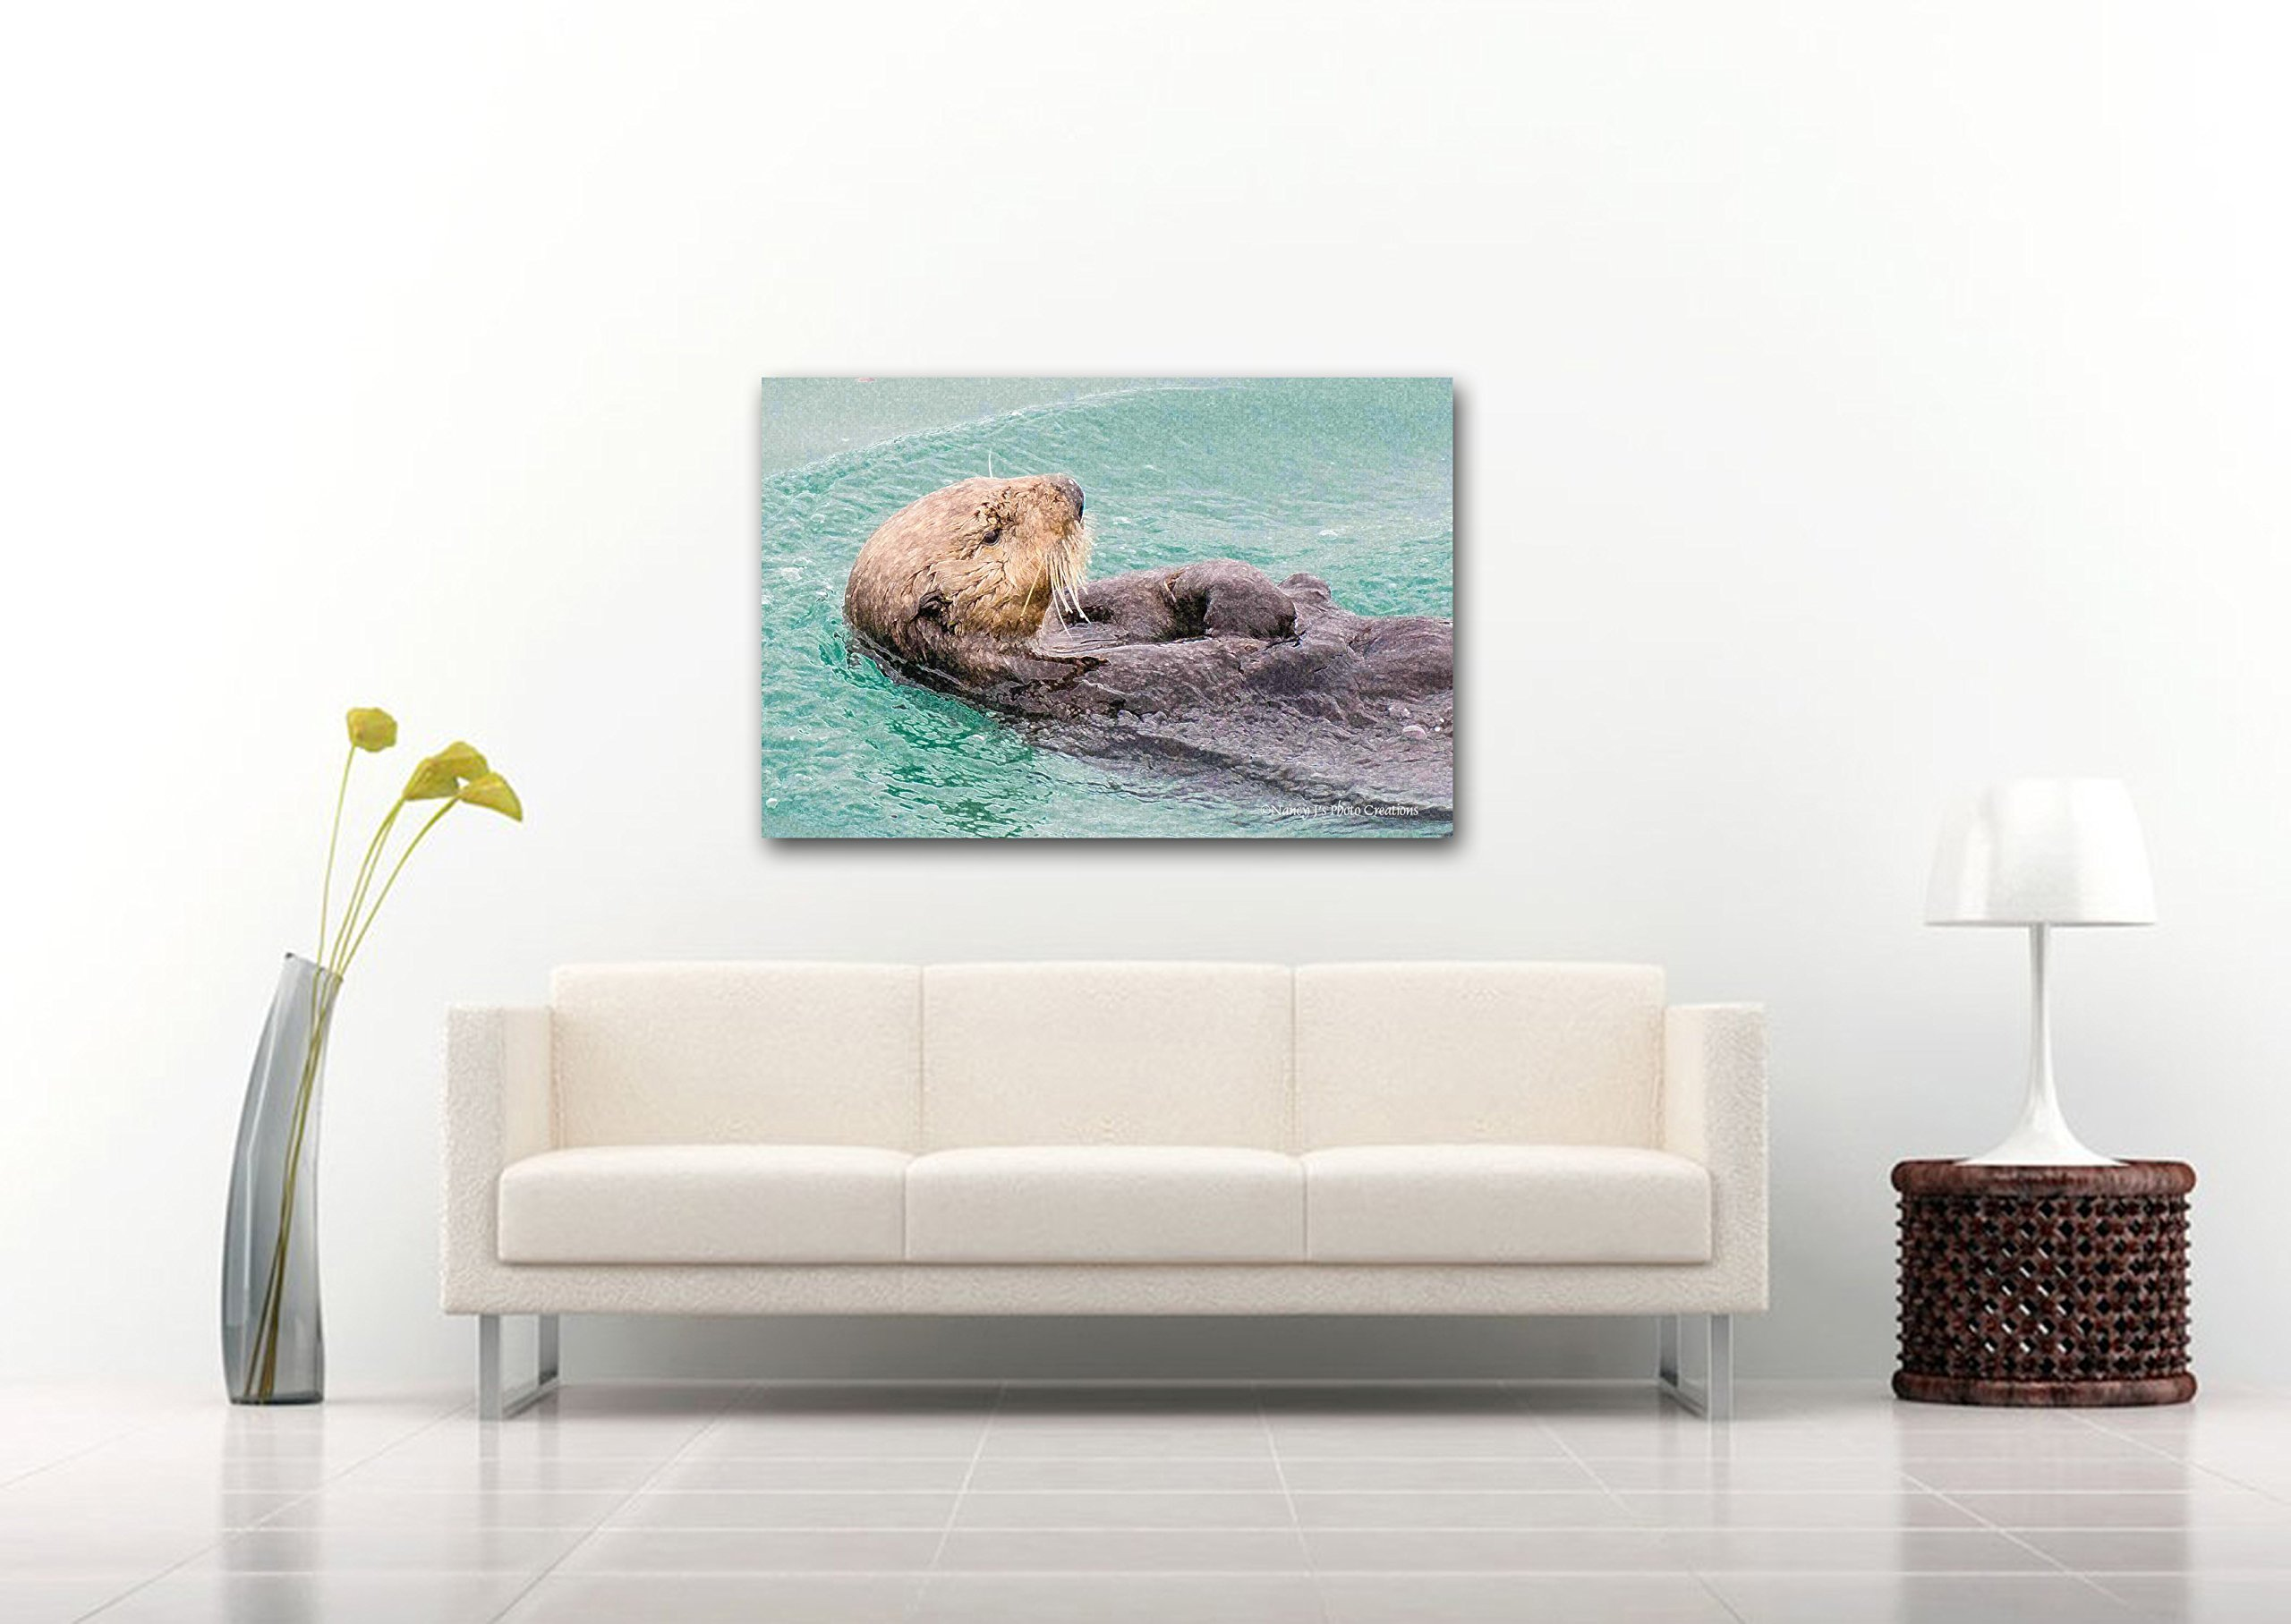 Personalized CANVAS Gift for Child Teal Nursery Decor Adorable Otter Print Sea Animal Photography Bright Digital Wall Art Alaska Ocean Wildlife Nature Photo Ready to Hang 8x12 12x18 16x24 20x30 24x36